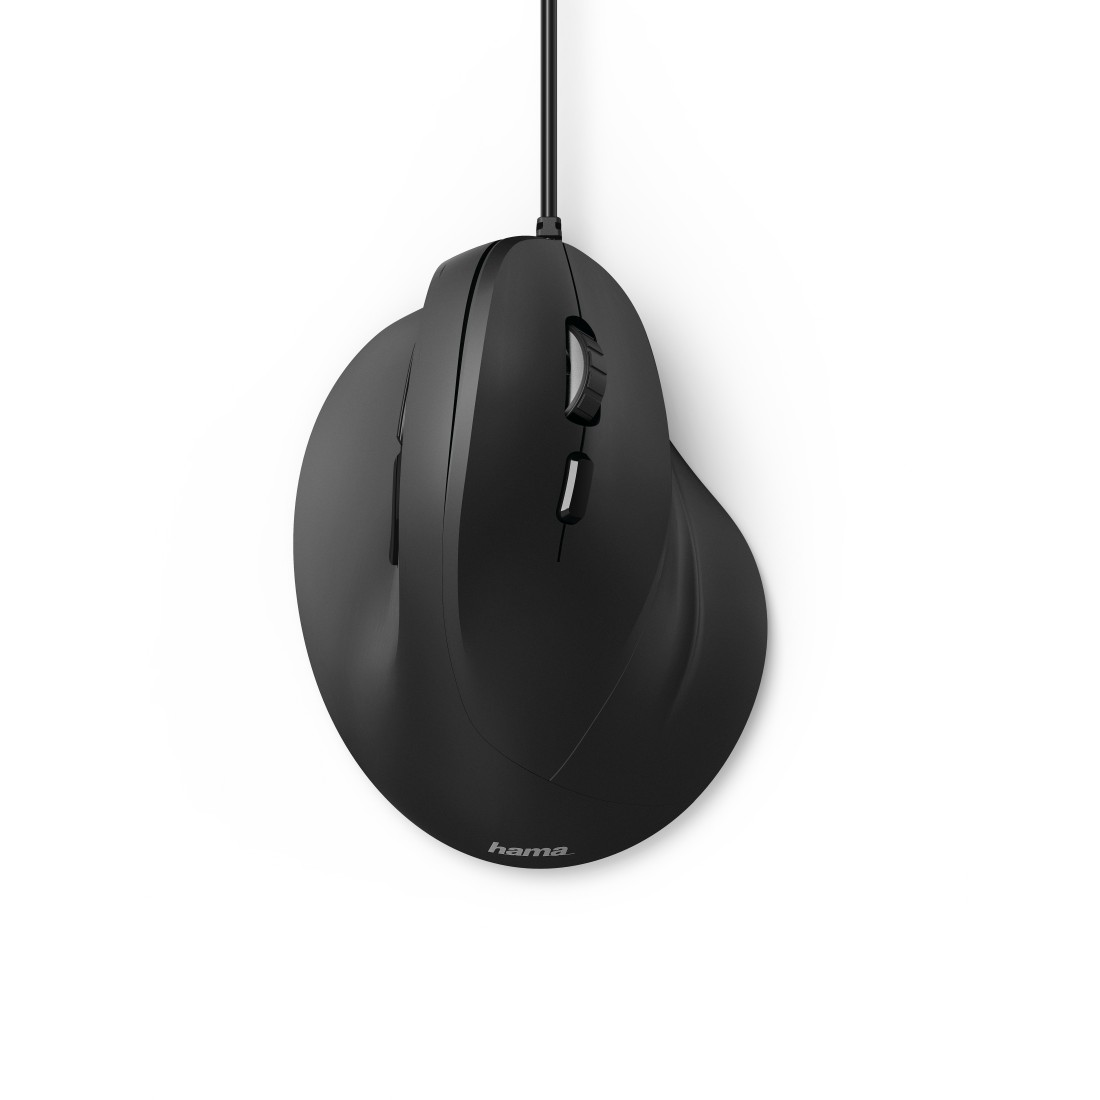 "abx2 High-Res Image 2 - Hama, Vertical, Ergonomic ""EMC-500"" Mouse, Cabled, 6 Buttons, black"